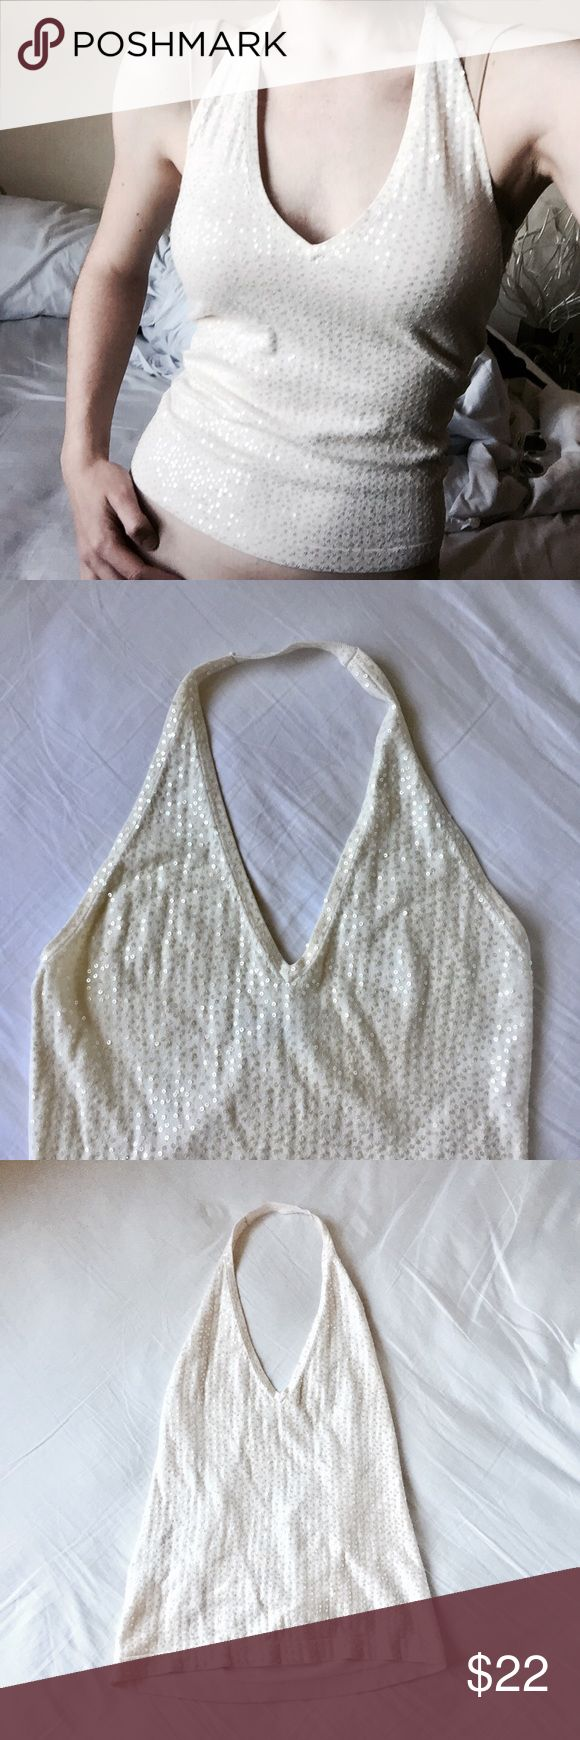 🌞BCBGMaxAzria Off White Sequin Top Exactly as it appears! Super beautiful! BCBGMaxAzria Tops Tank Tops